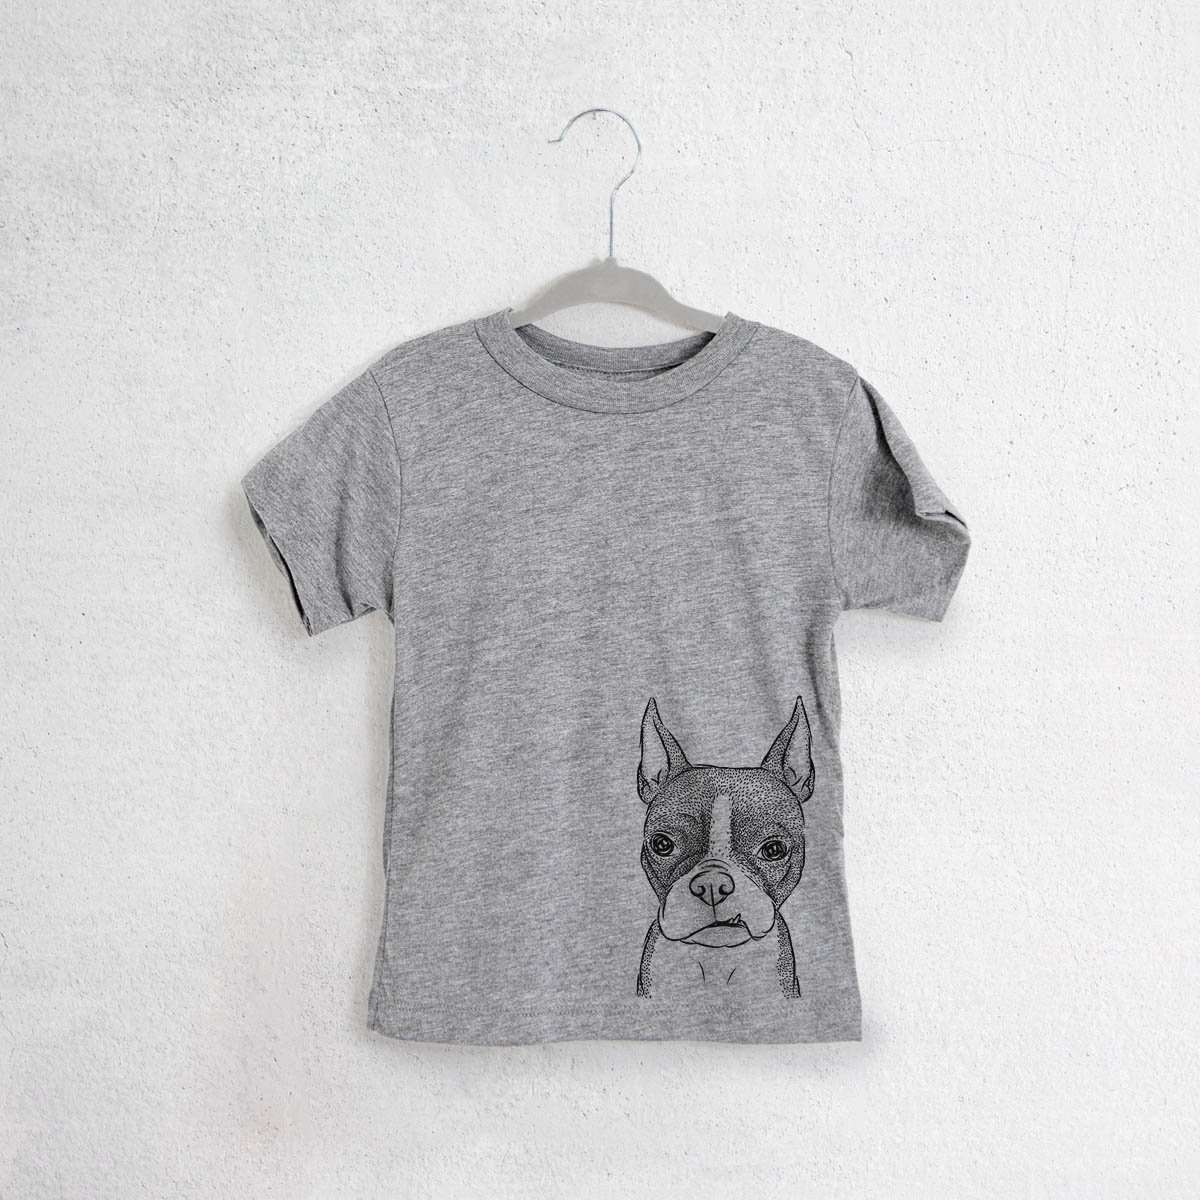 Bean the Boston Terrier - Kids/Youth/Toddler Shirt